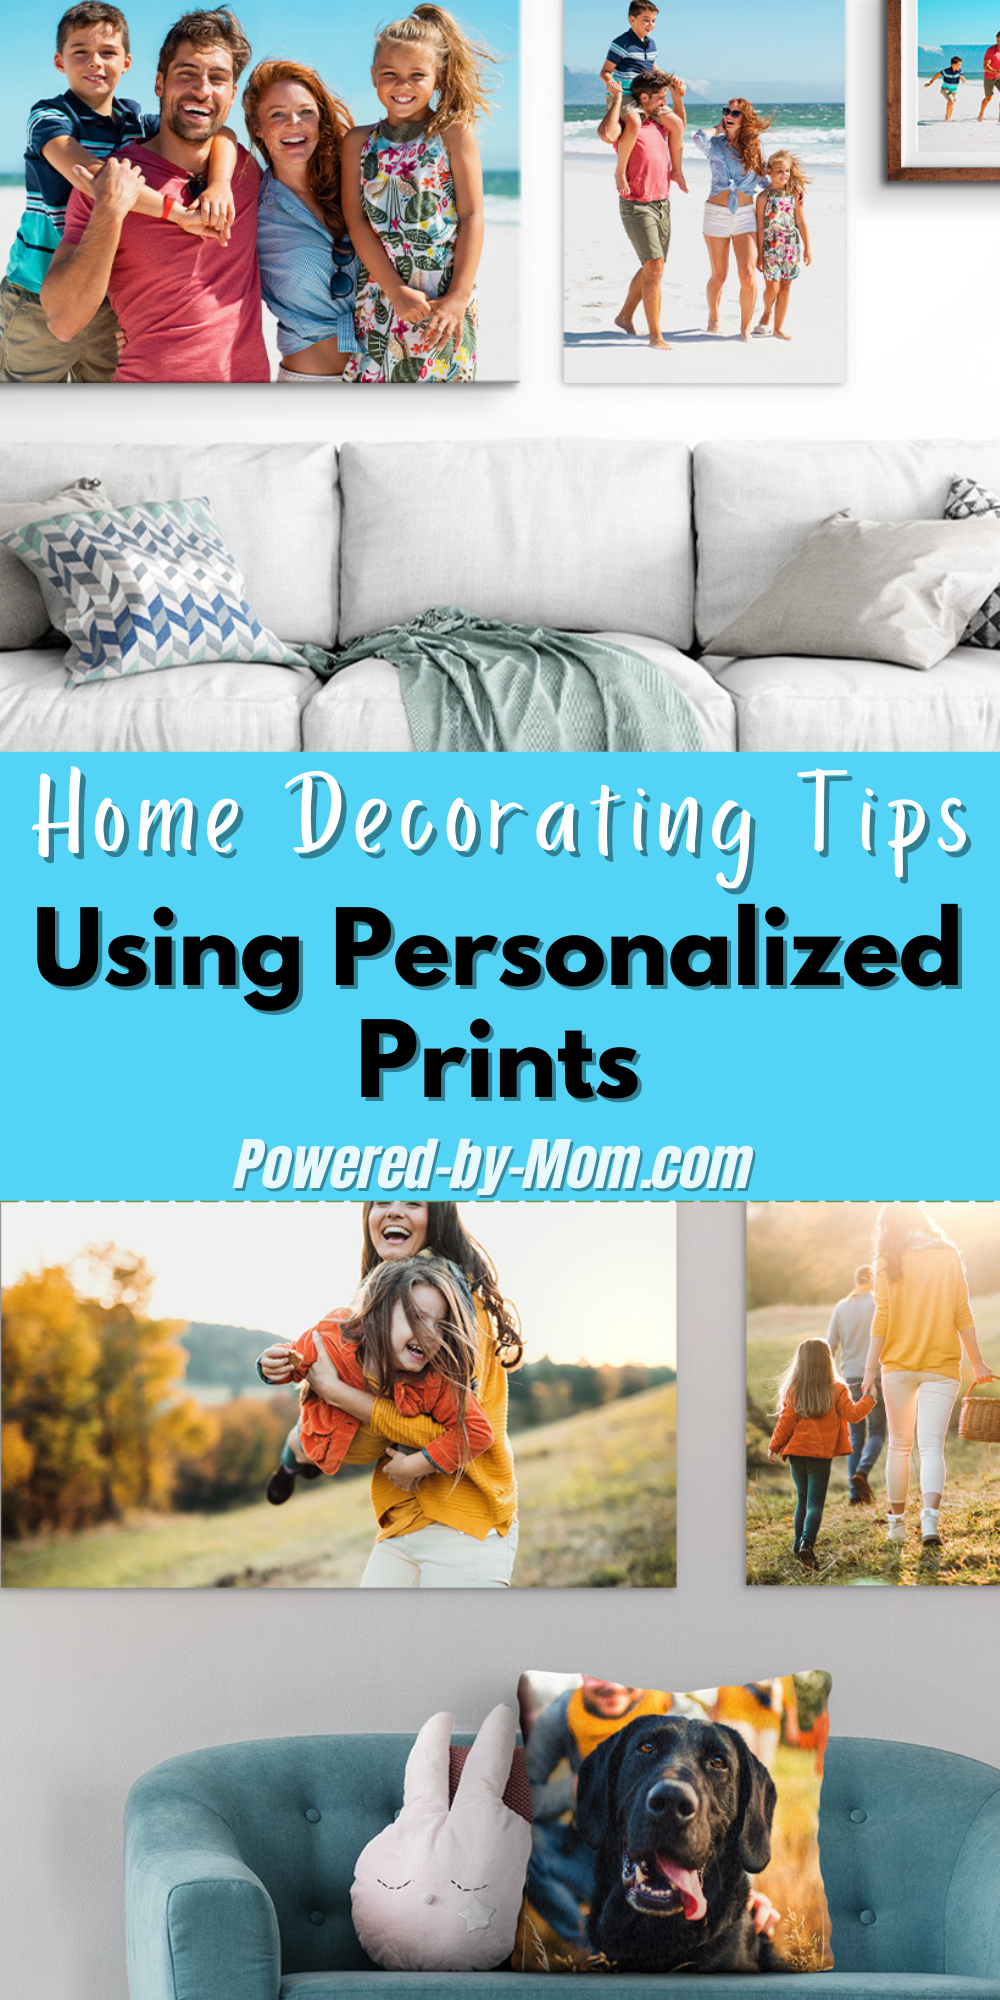 One easy but effective way to create the ambiance and style you want to exude in your home is to use the storytelling power of photography like in a display of personalized prints.